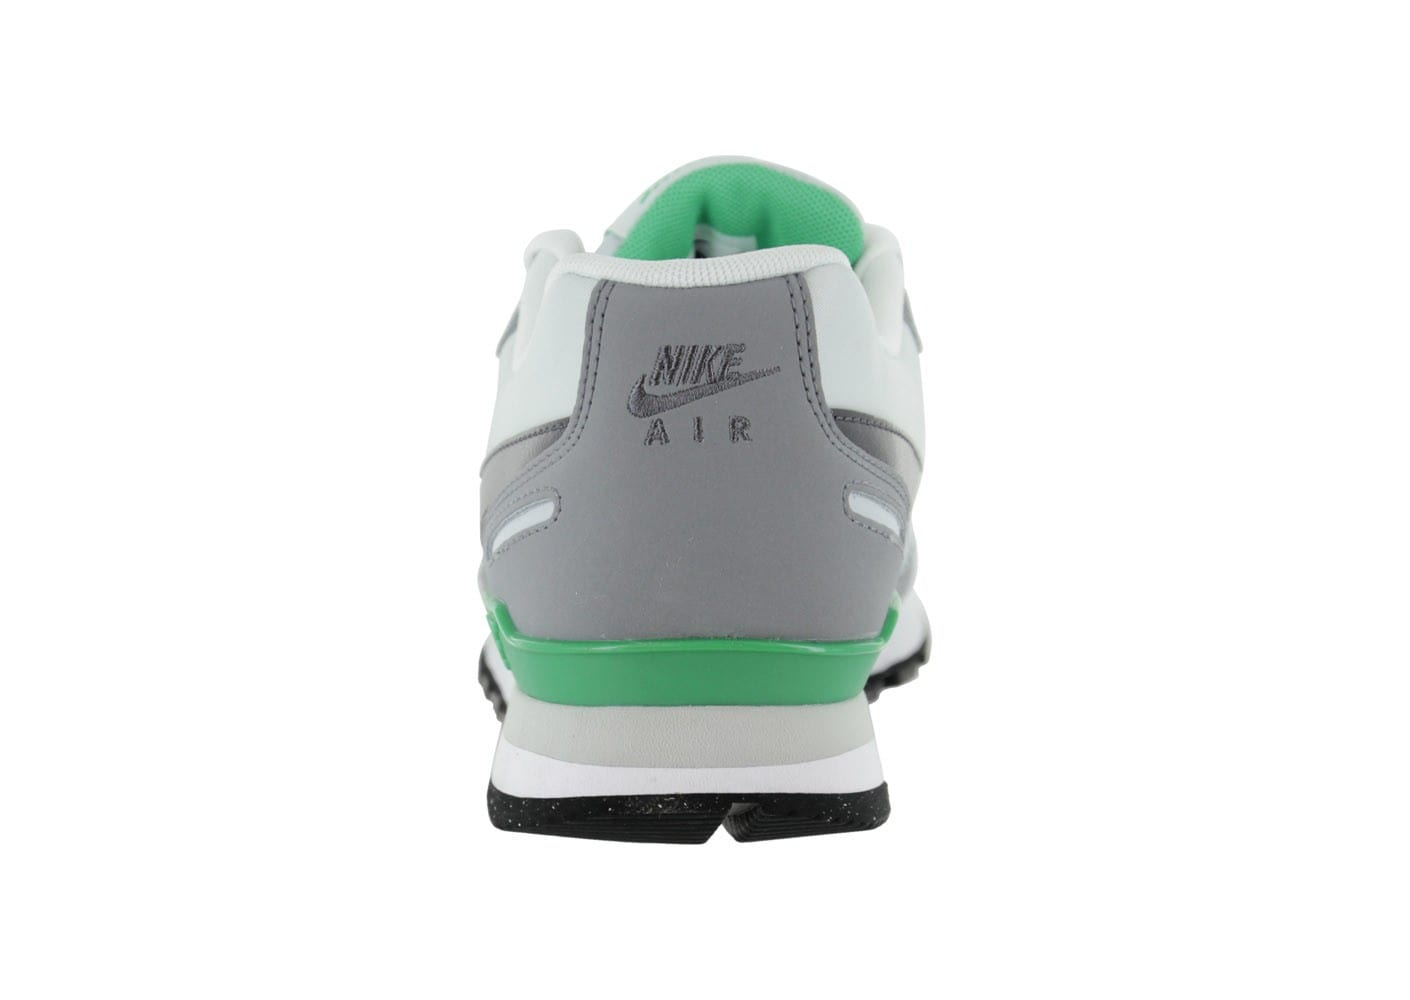 sports shoes 9f17d 72946 ... chaussures nike air waffle gr t313 vue arriere